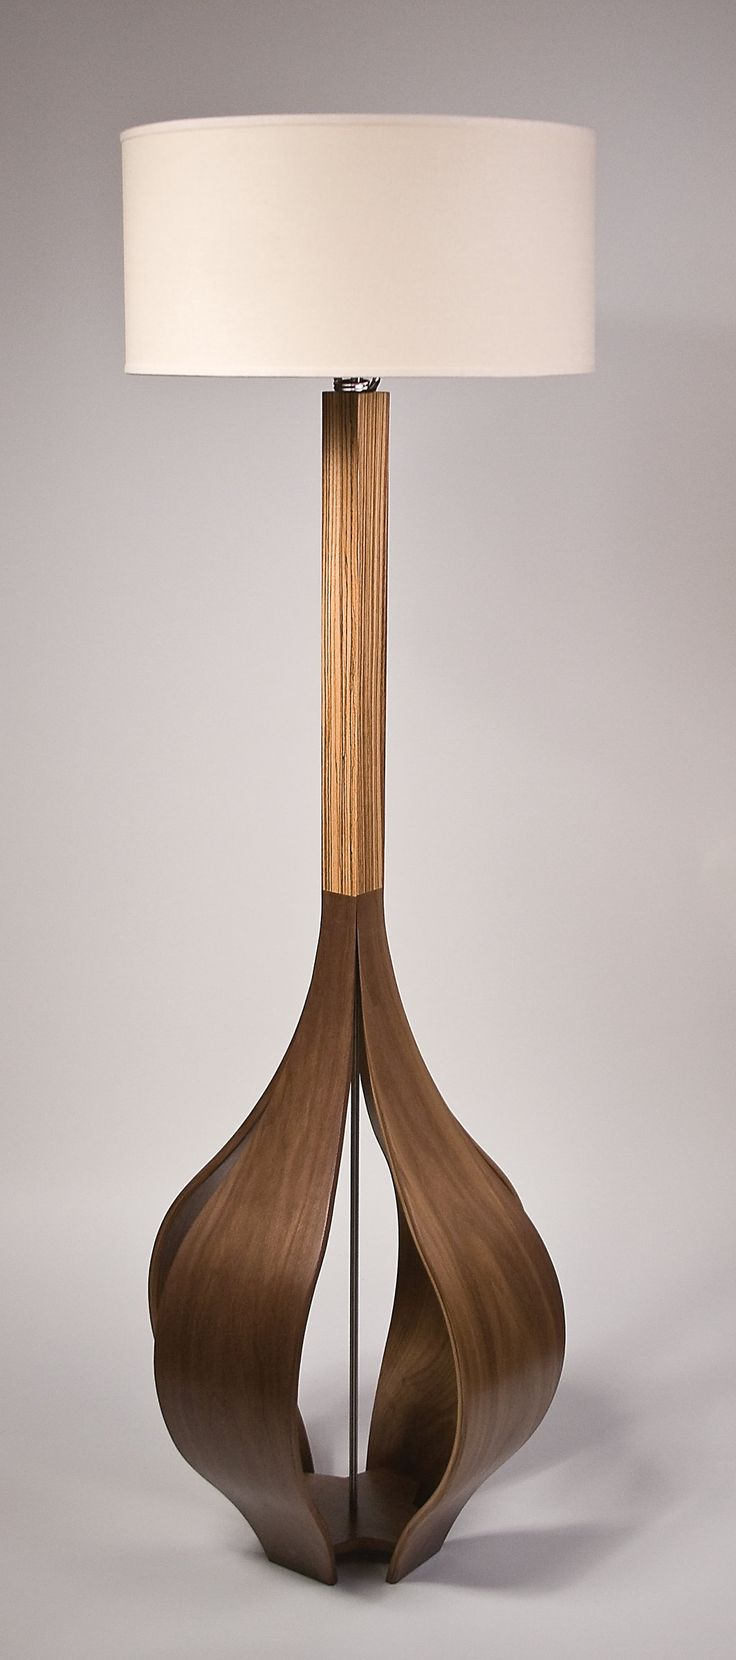 Table lamp harp sizes - Michael Mccoy Via Artfulhome I D Like It For My Living Room Sculptural